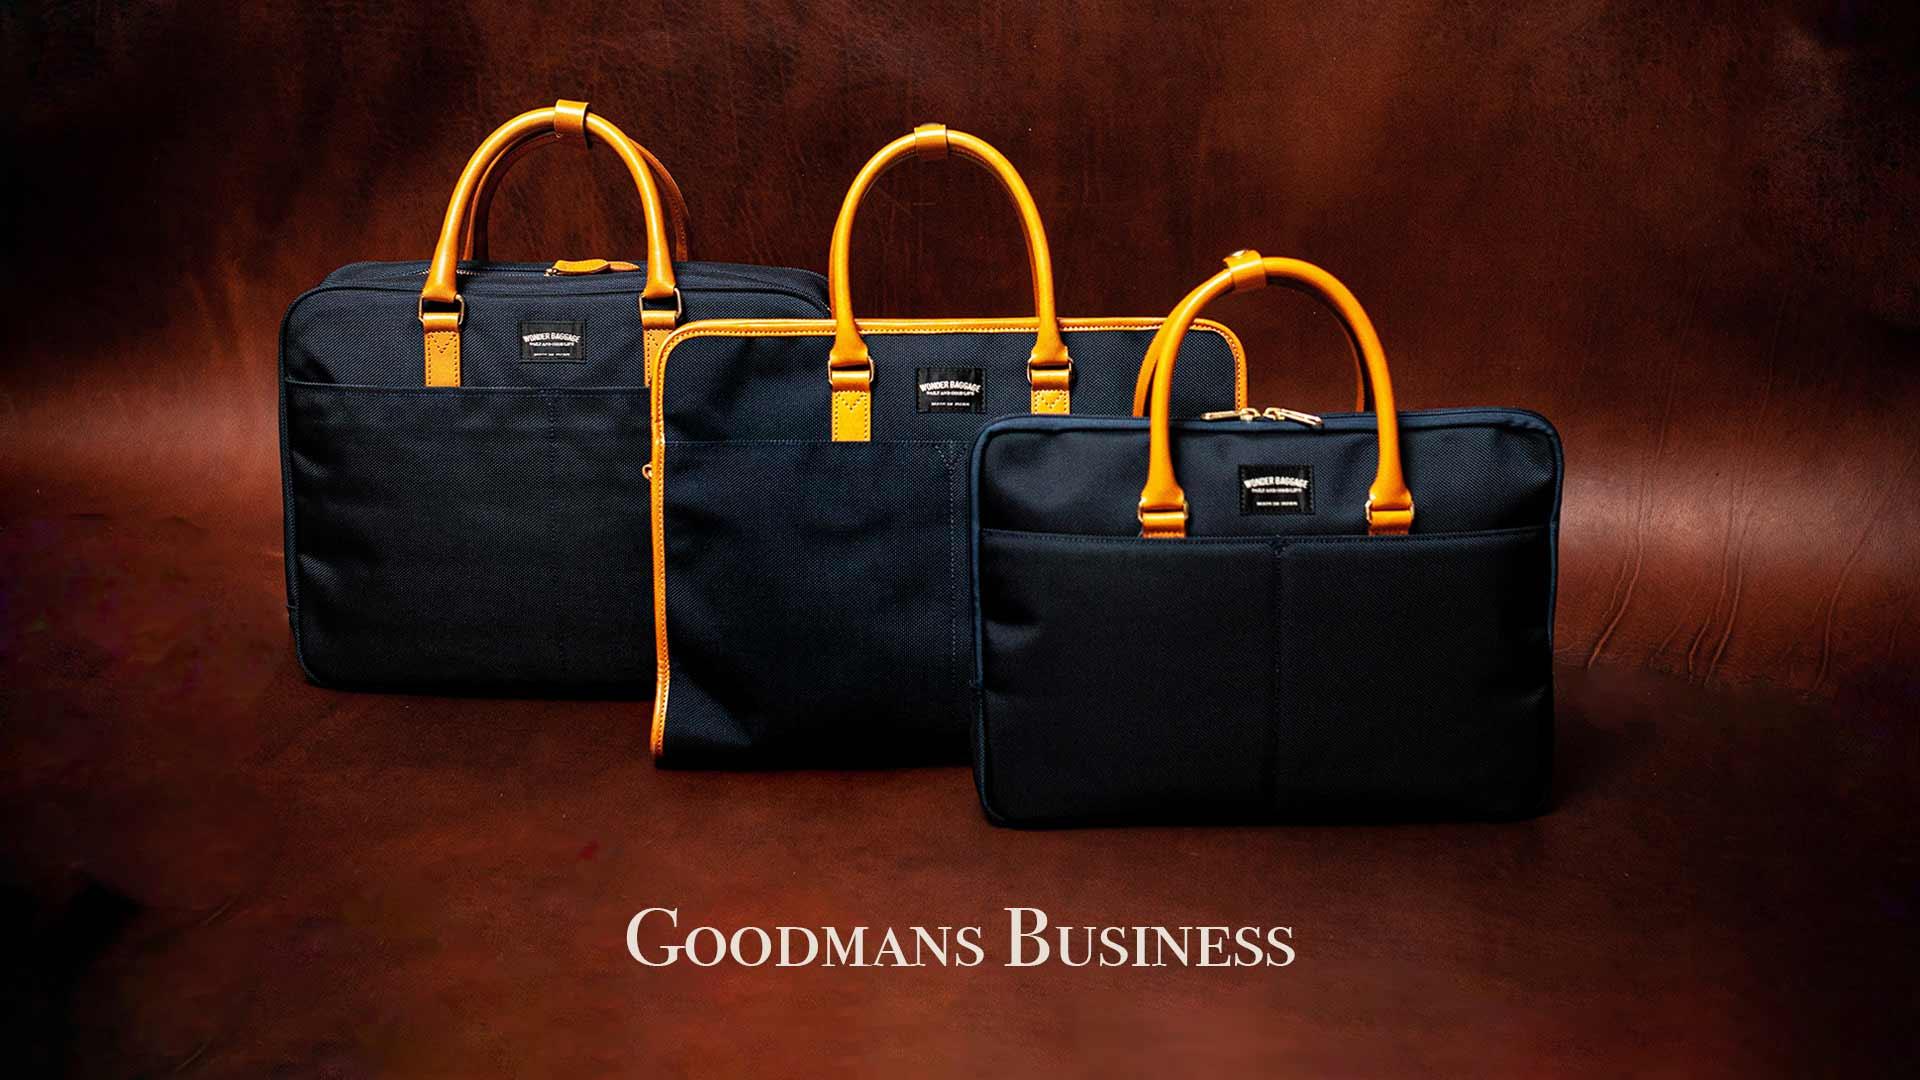 GOODMANS BUSINES